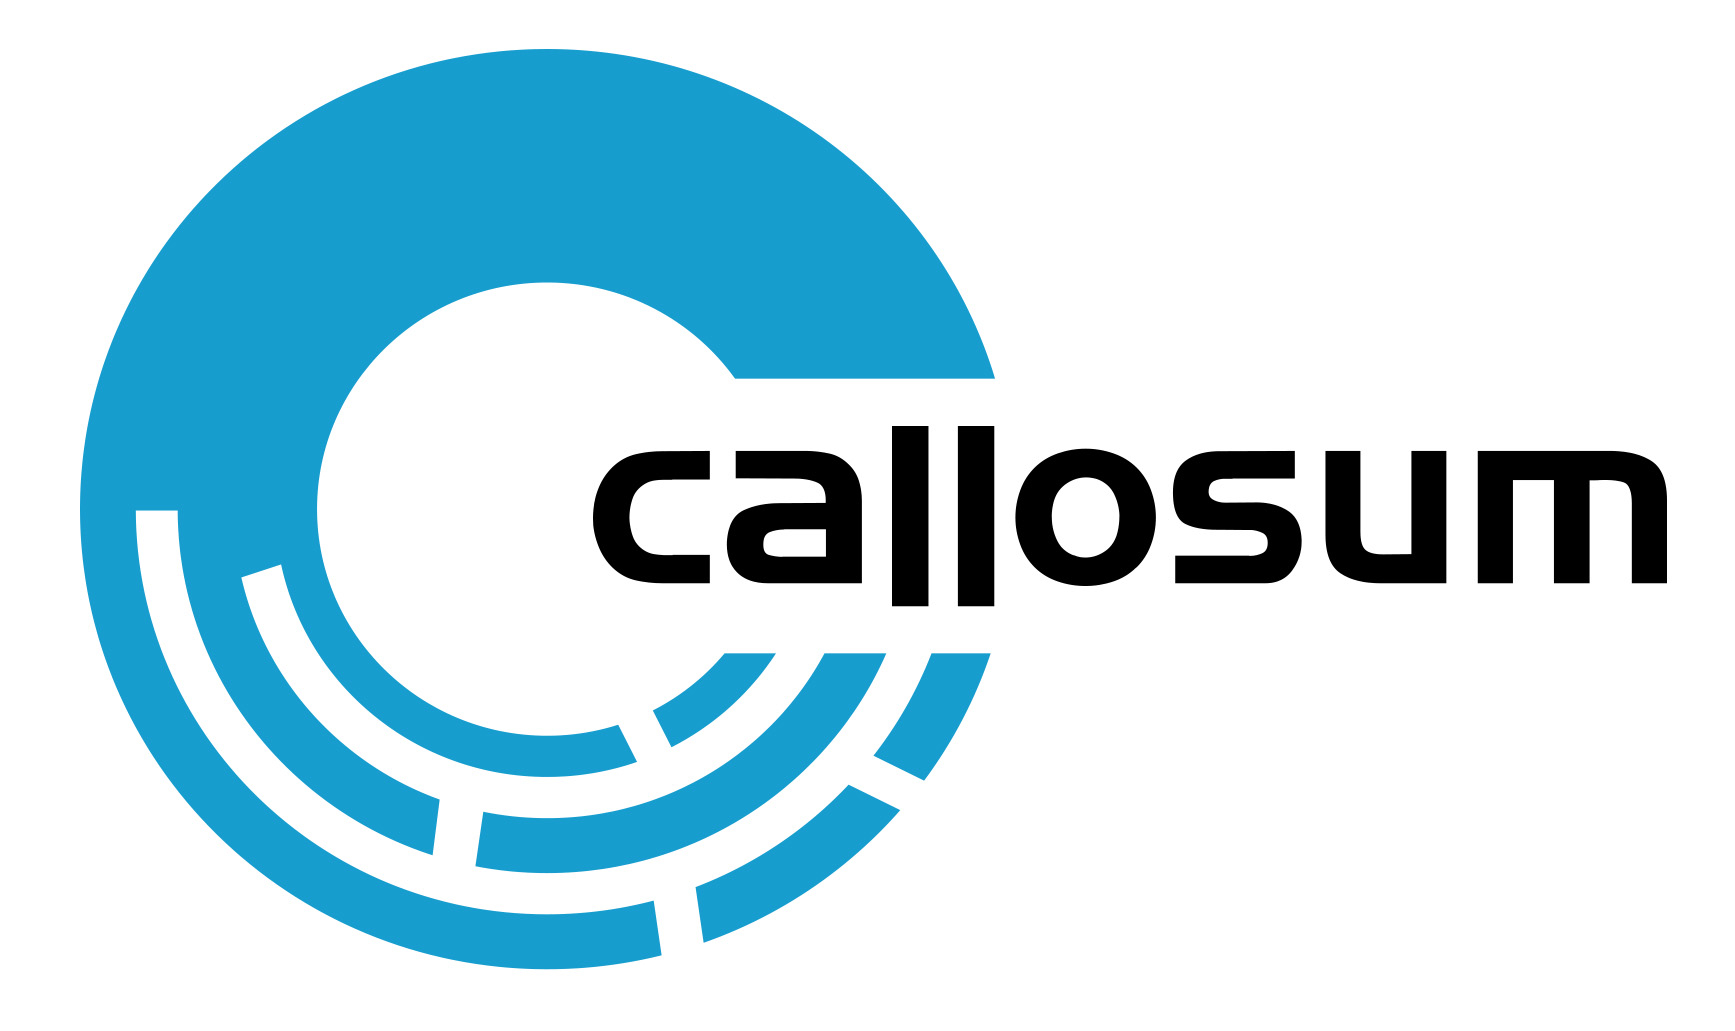 Callosum Software